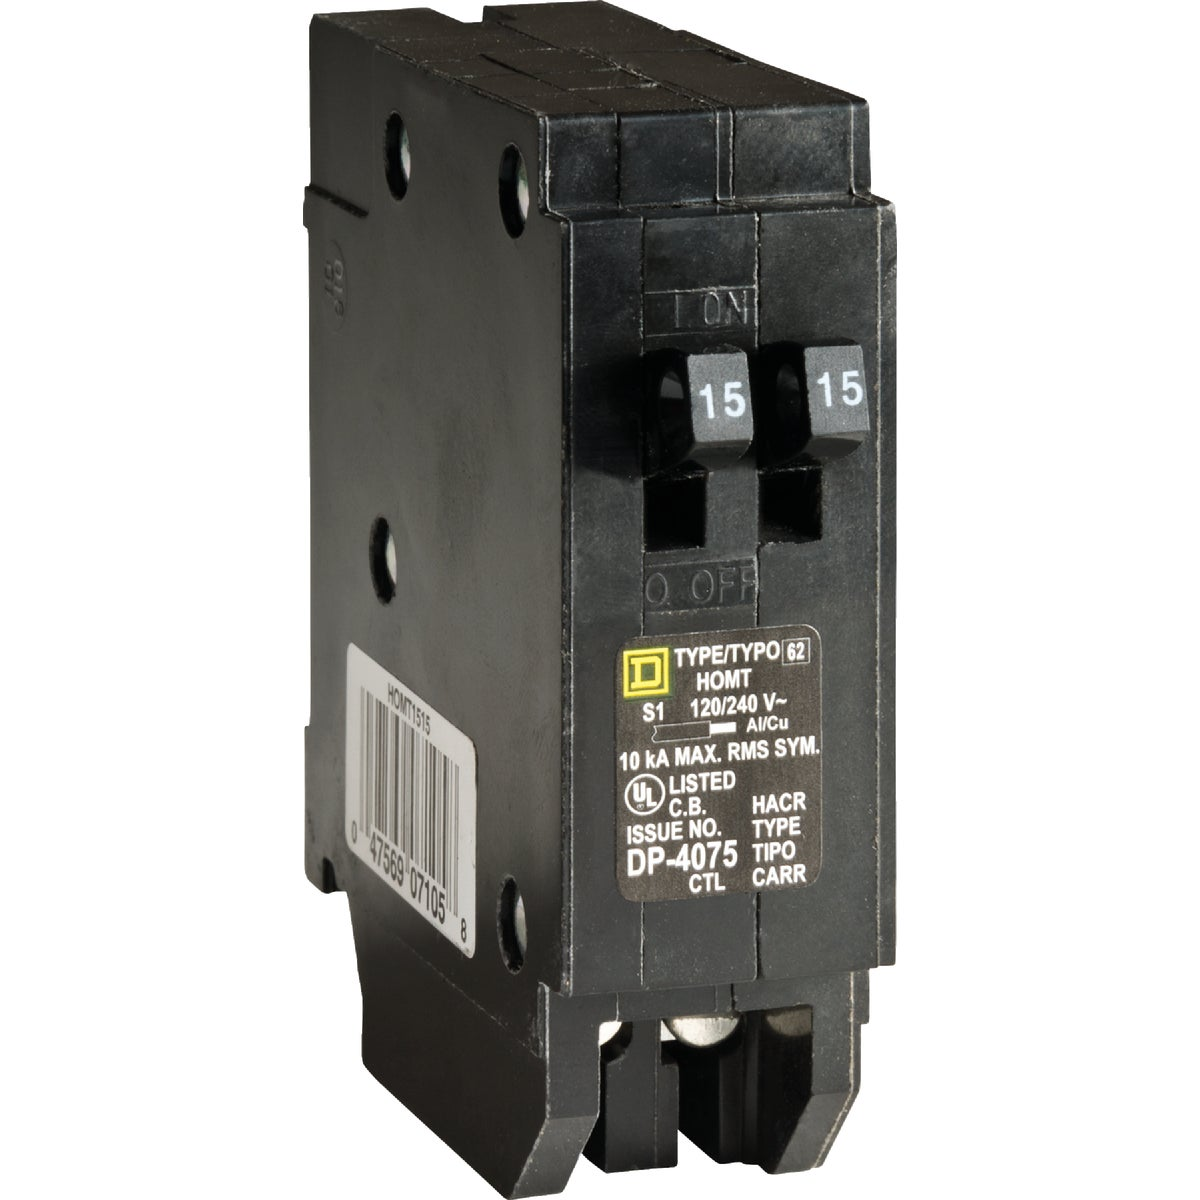 15A/15A TAND BREAKER - HOMT1515CP by Square D Co